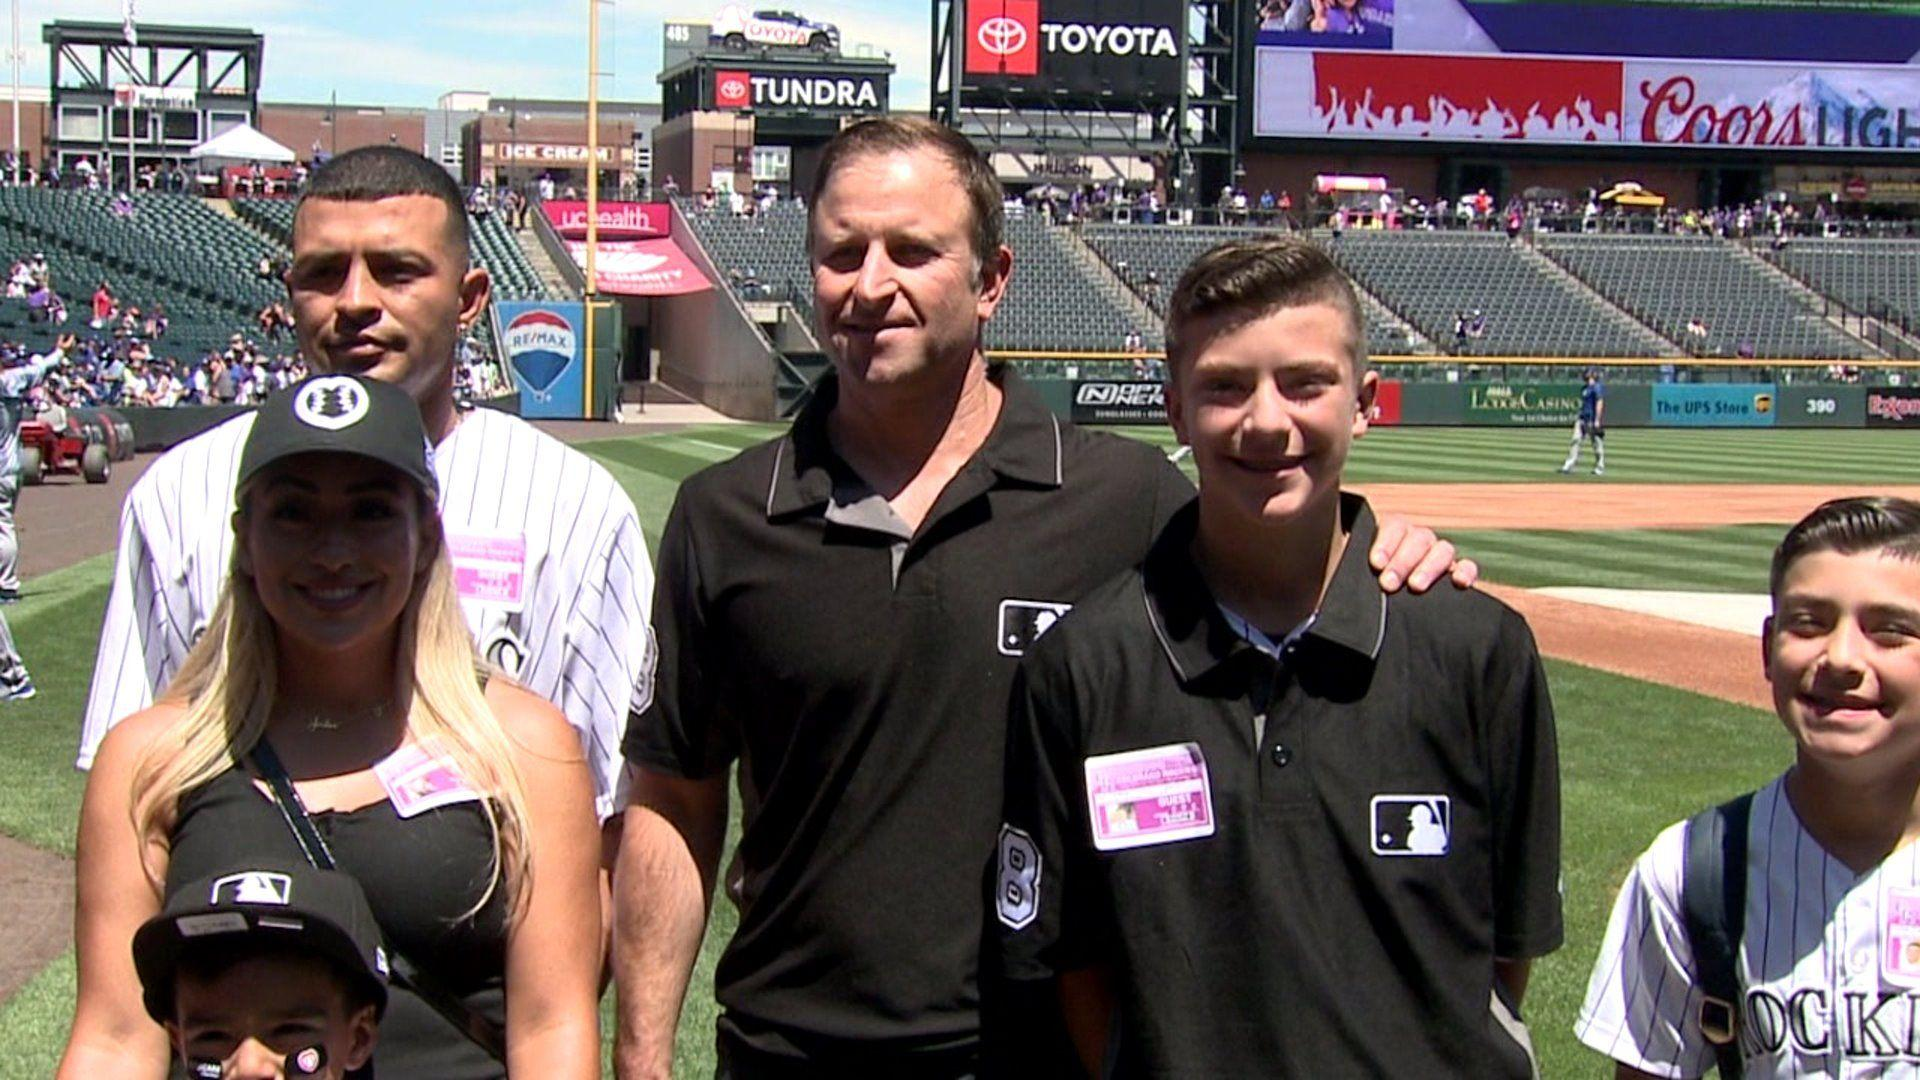 Teen Umpire Involved in Viral Baseball Brawl Gets a Special Day at Colorado Rockies Game